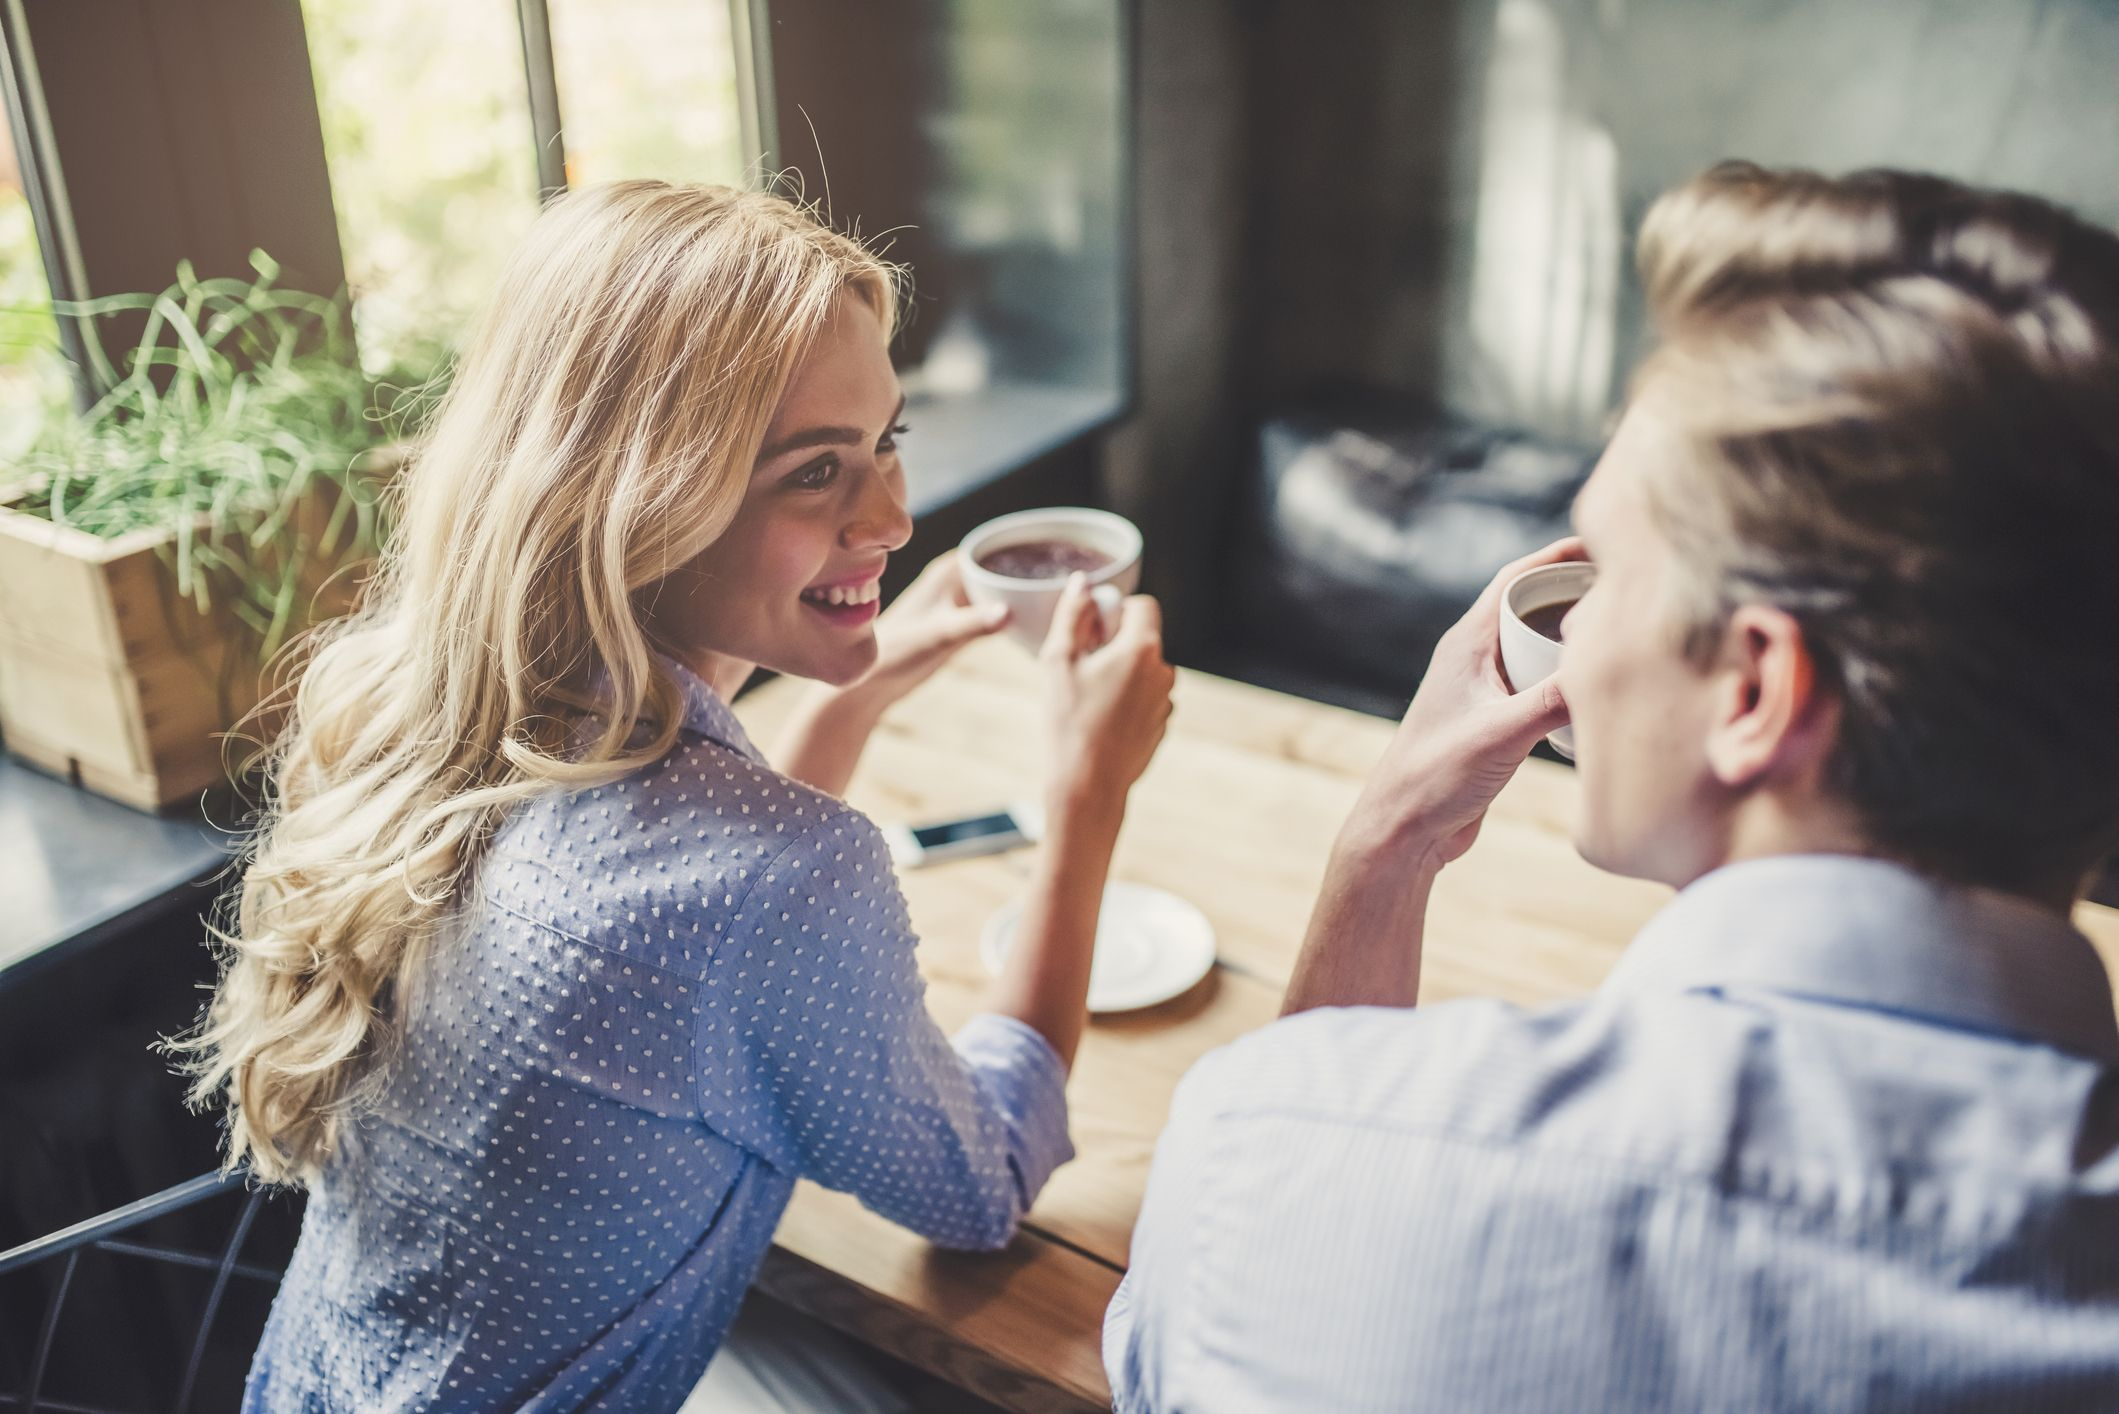 Men Love It When Women Make the First Move, Because They're Starved for Compliments